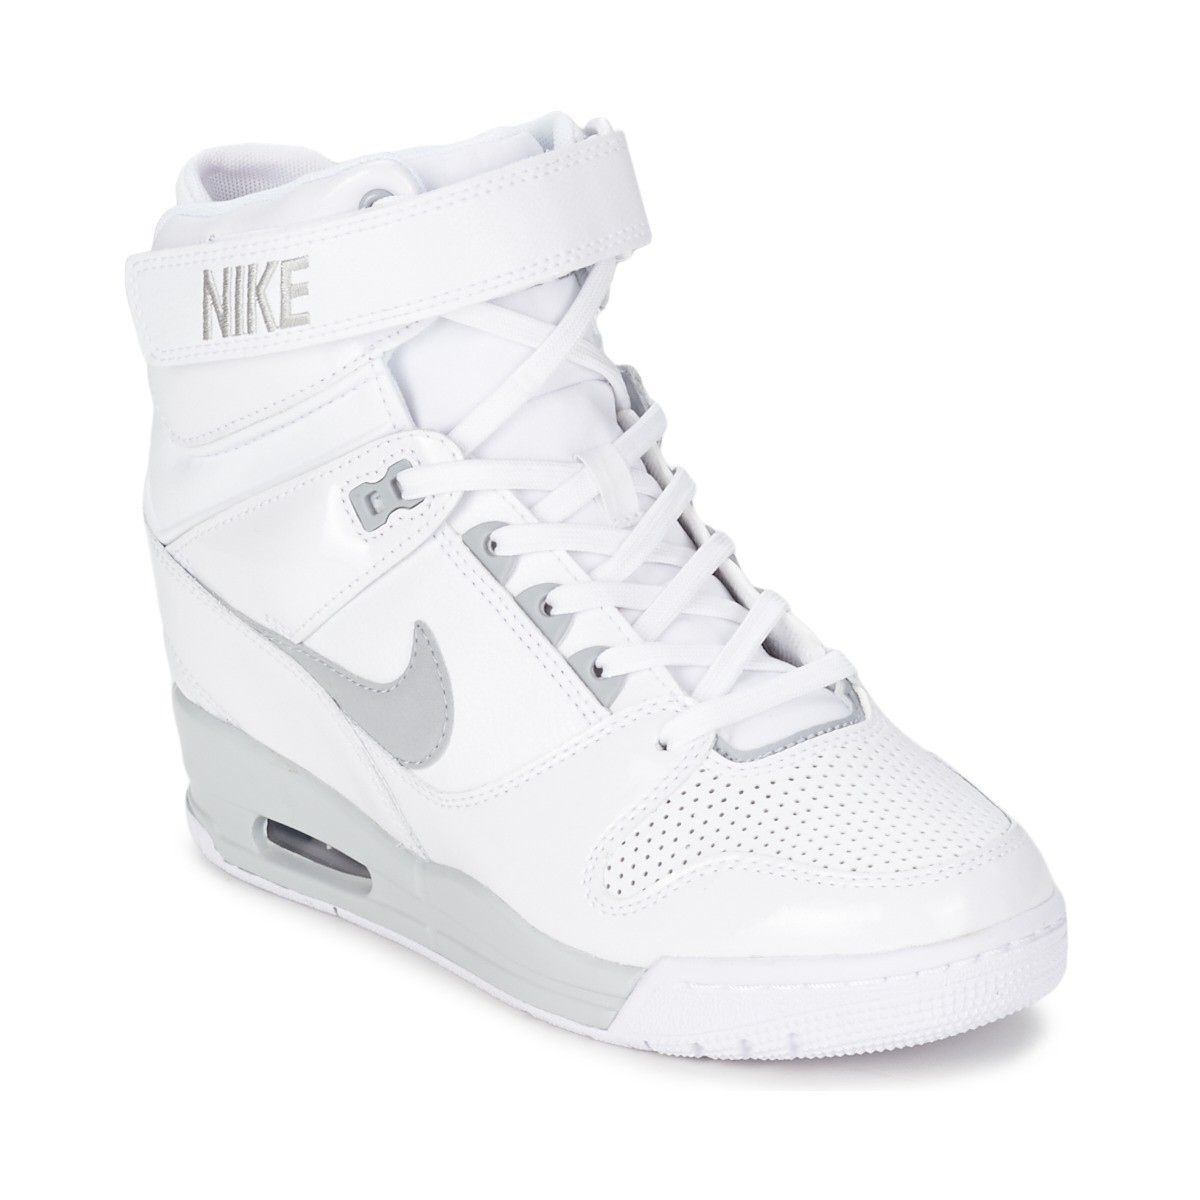 nike compensee femme pas cher